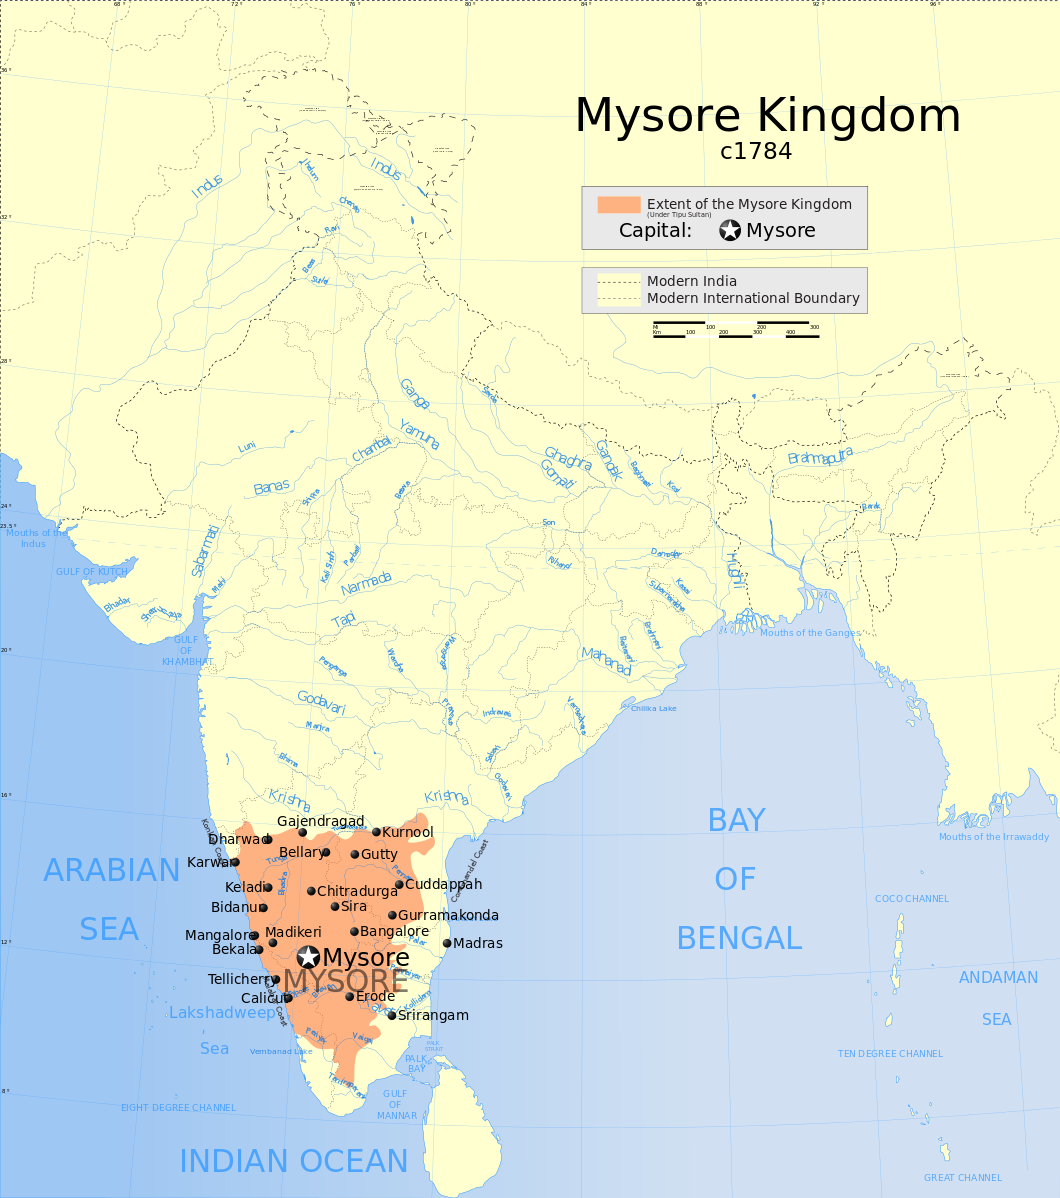 Map of India, highlighting the Mysore Kingdom in the South.